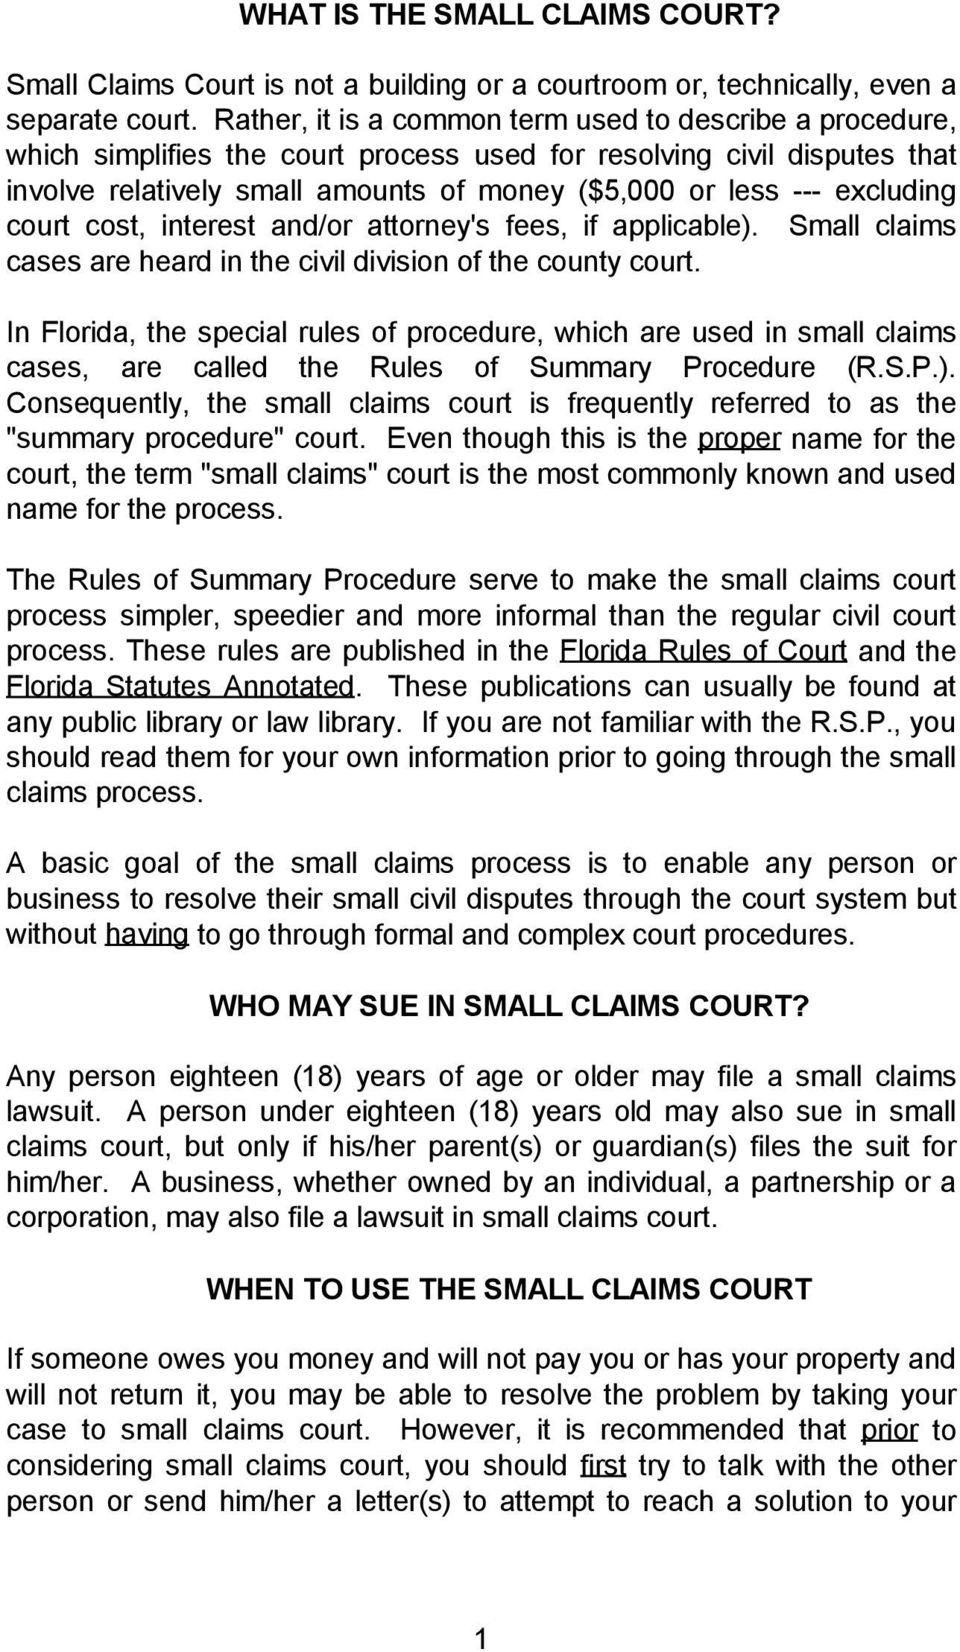 excluding court cost, interest and/or attorney's fees, if applicable). Small claims cases are heard in the civil division of the county court.